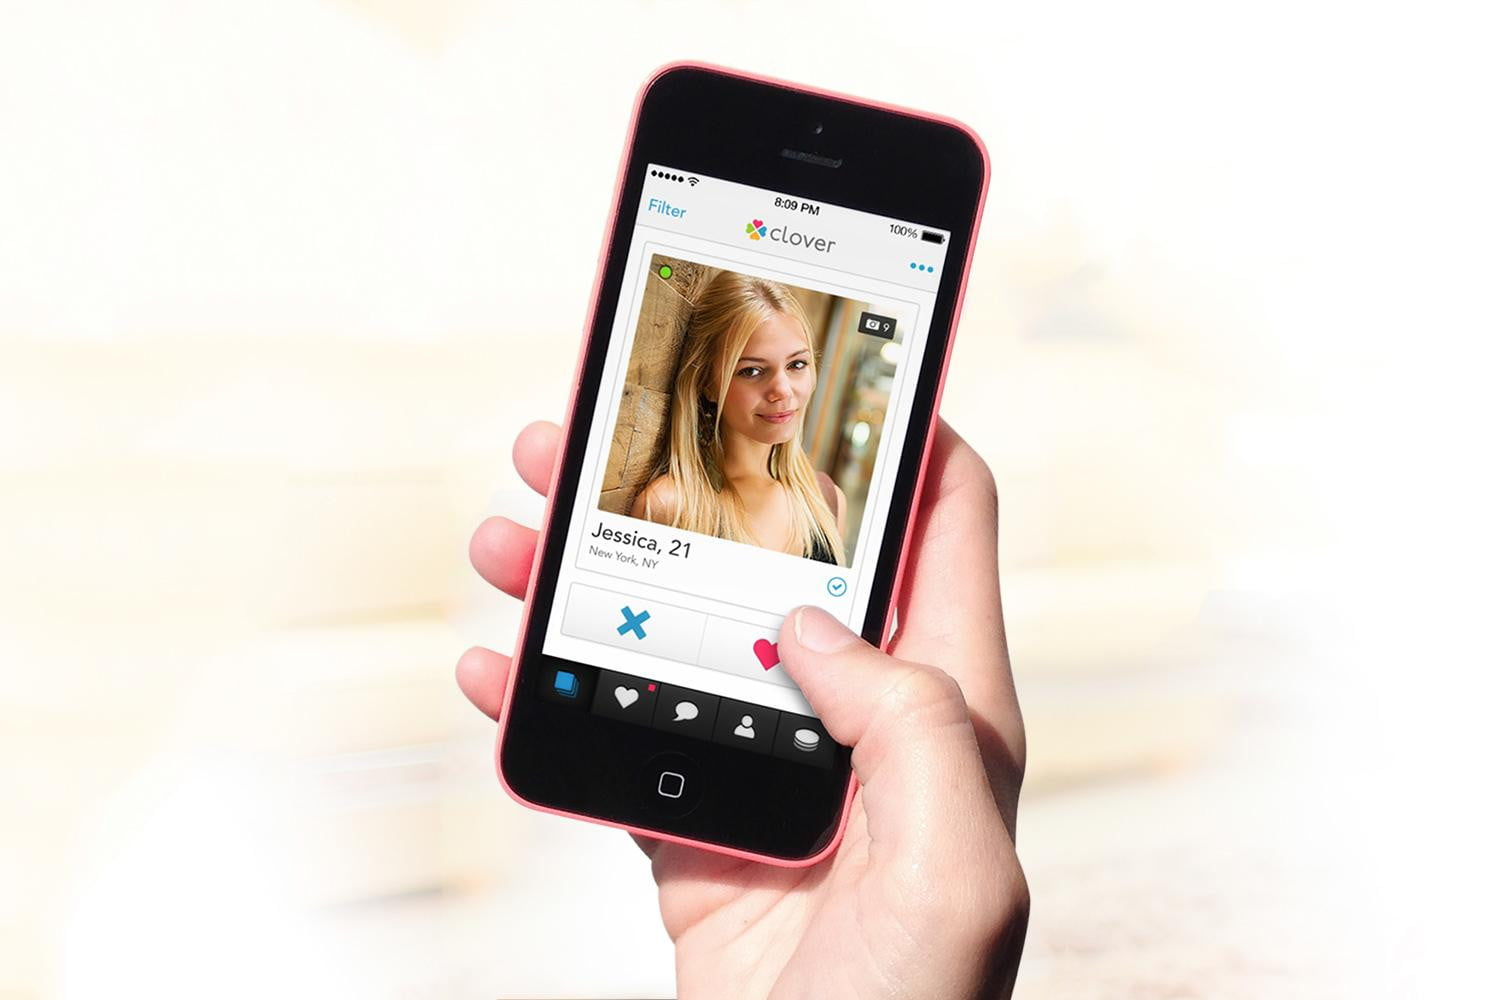 How to use clover hookup app